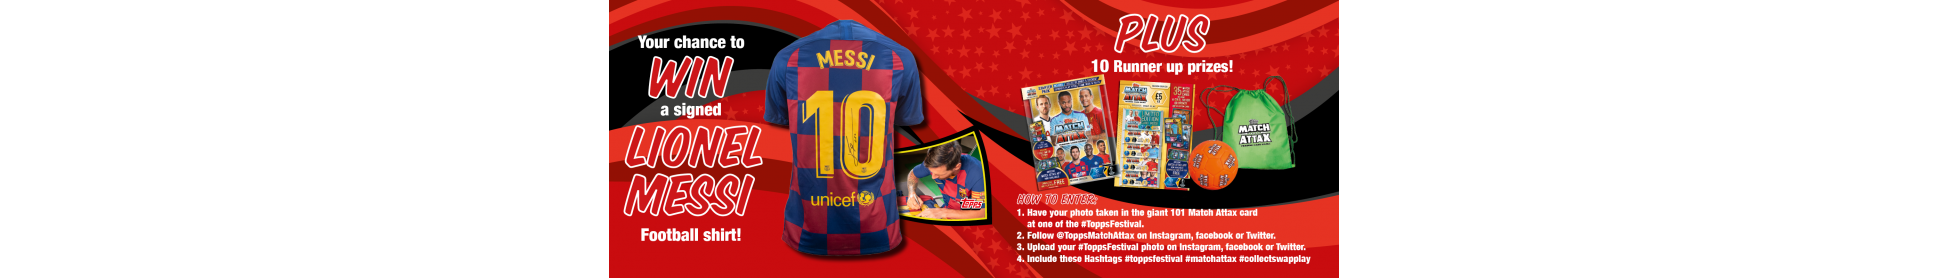 Topps Festival competition